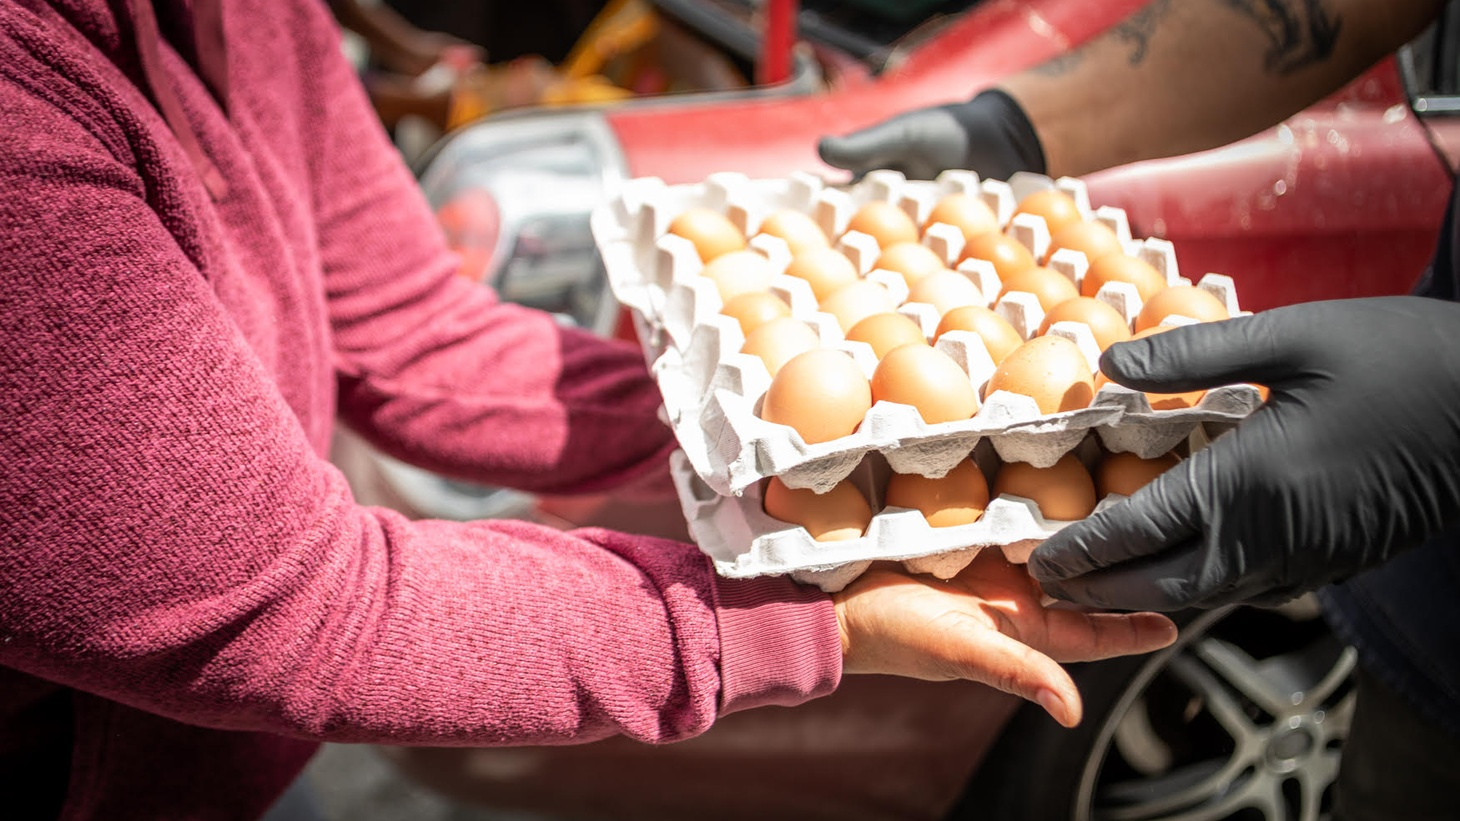 Eggs being distributed by No Us Without Them, a charity assisting undocumented workers in the restaurant industry.